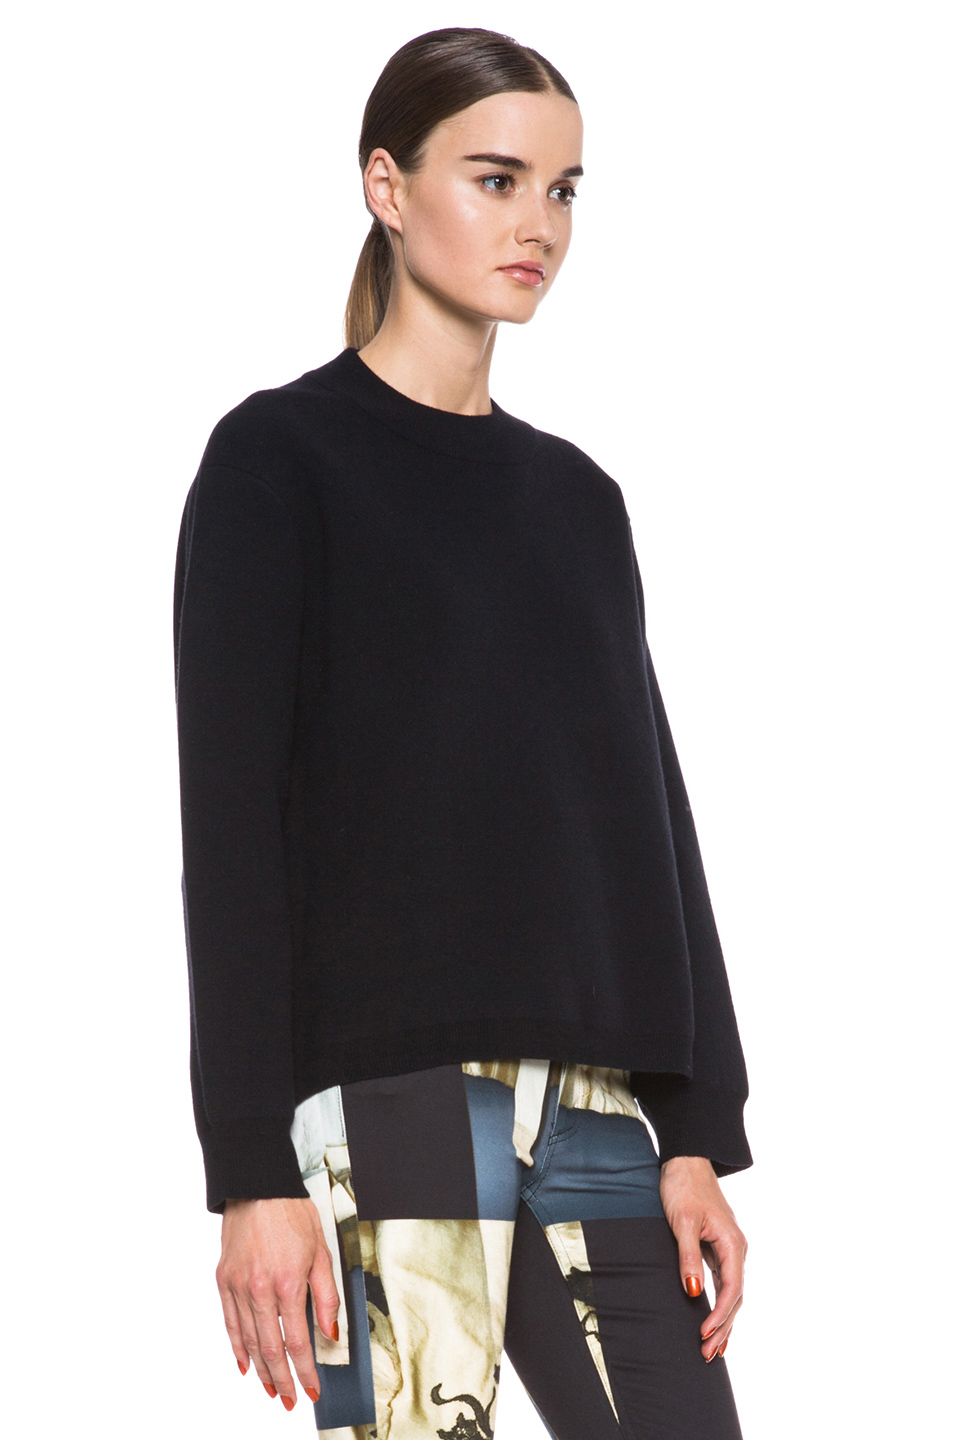 Acne Studios|Misty Merino Wool-Blend Pullover in Black